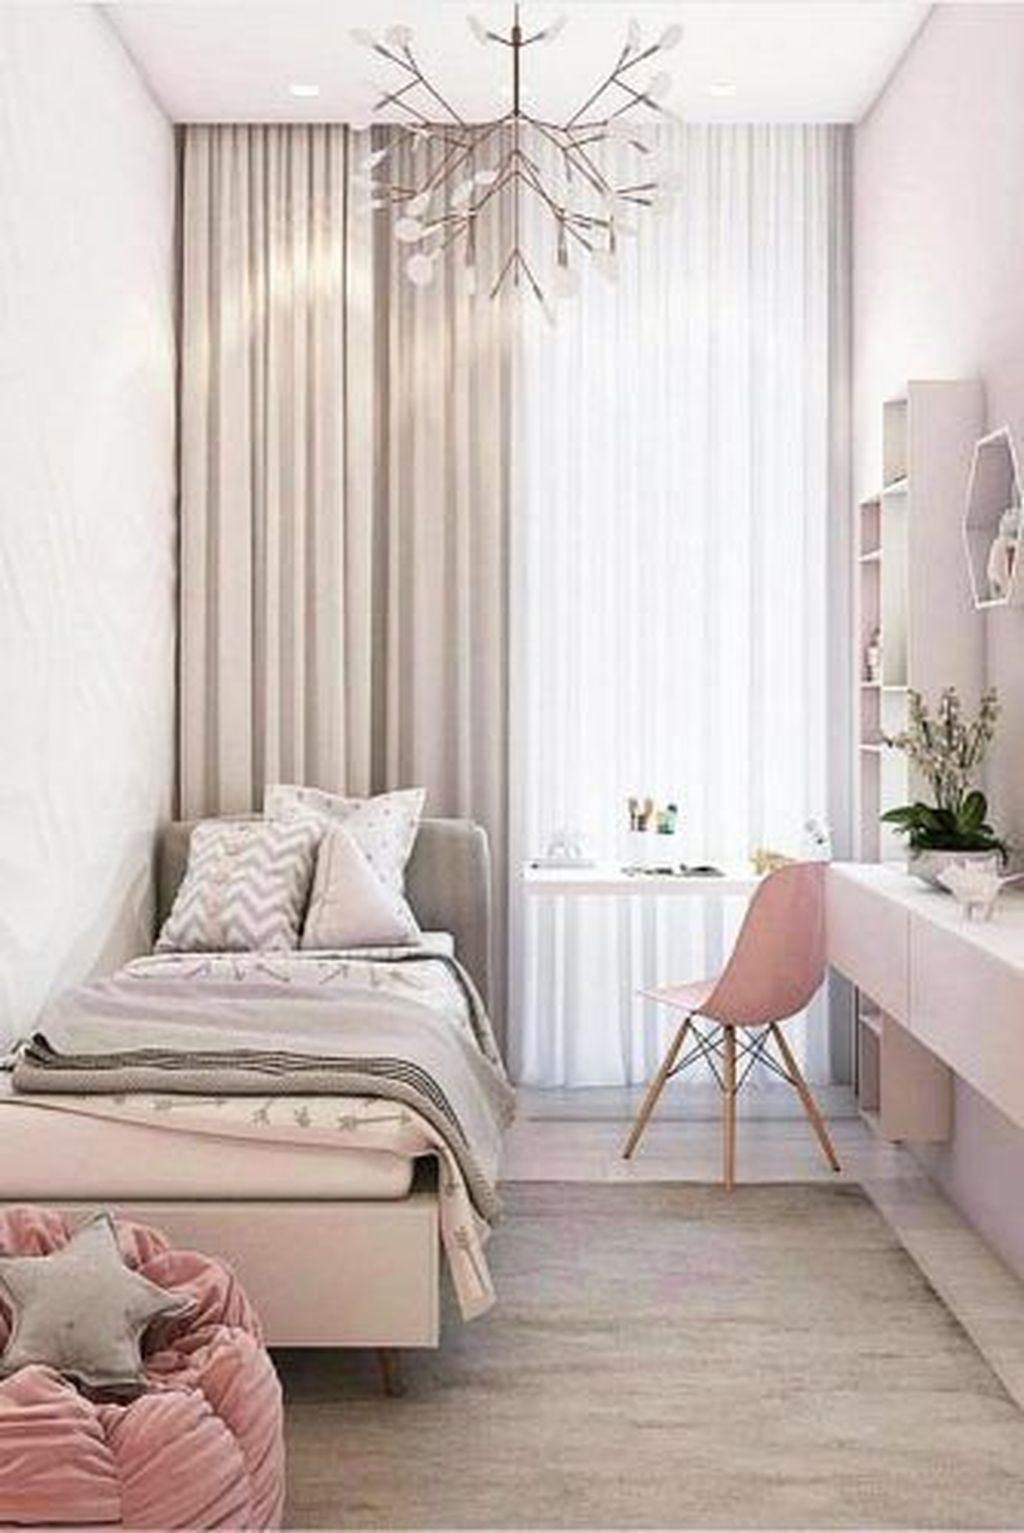 57 modern small bedroom design ideas for home | small